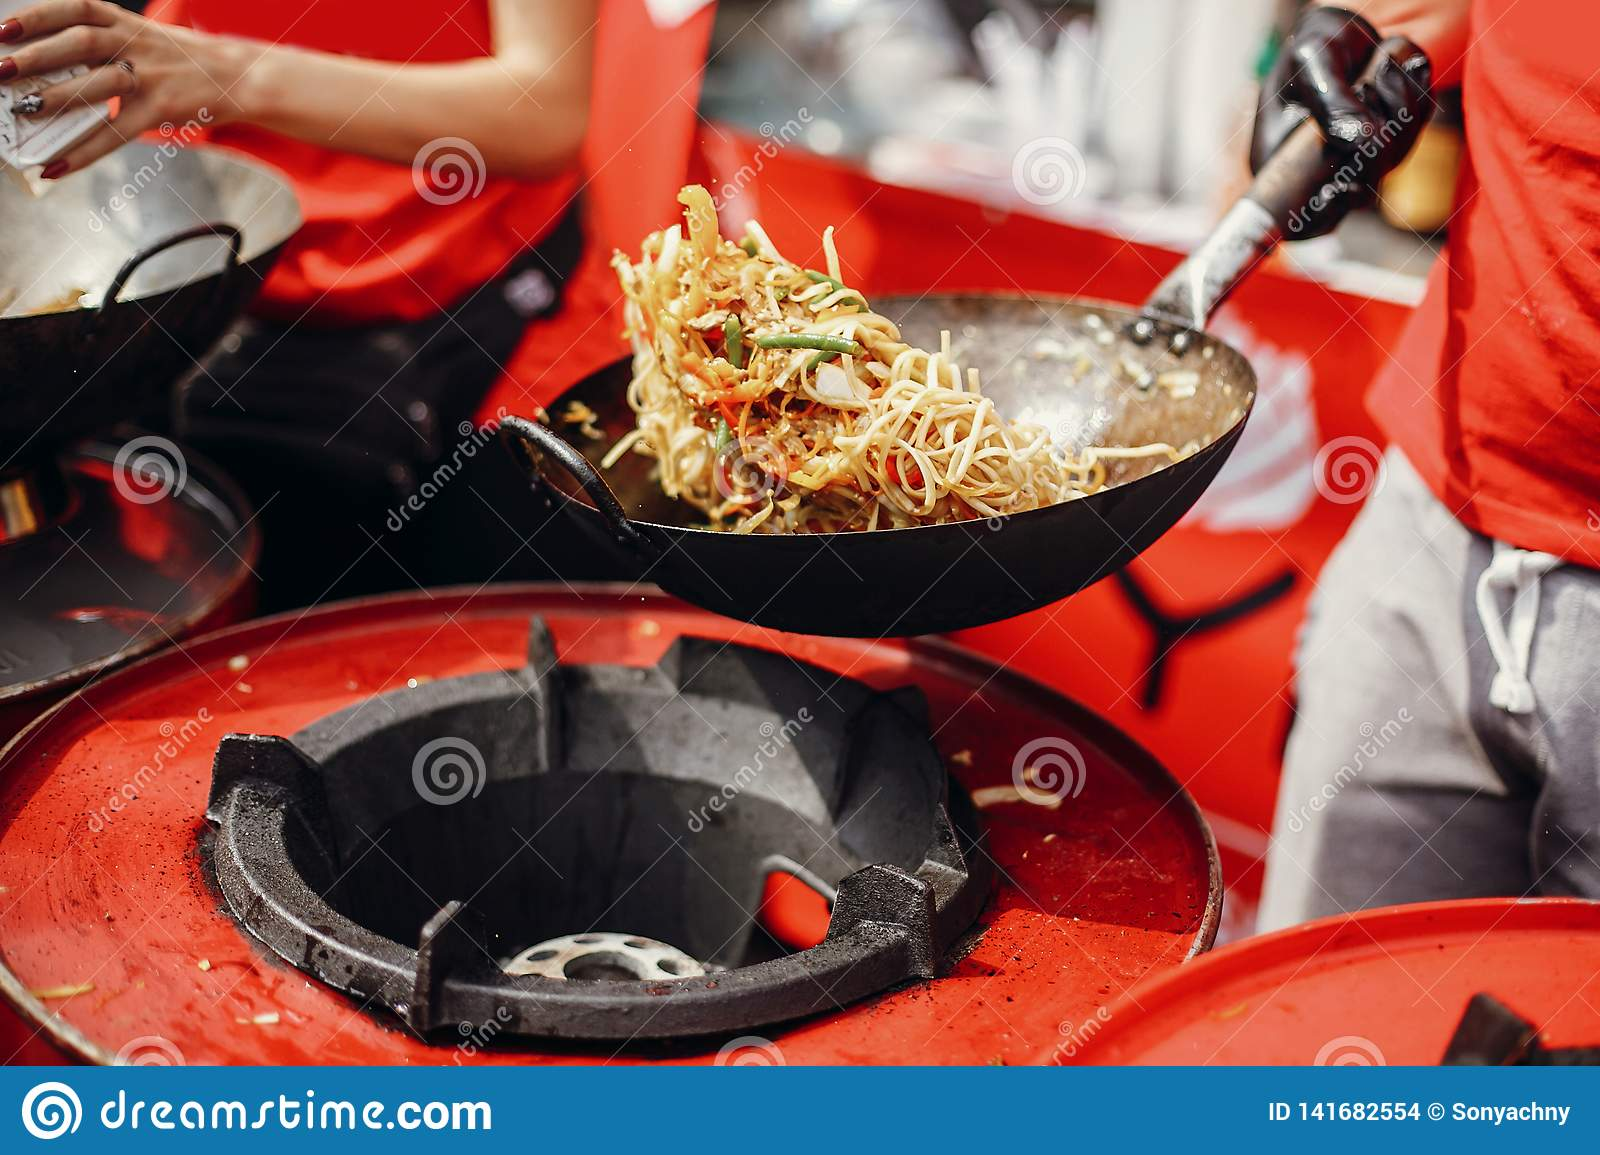 Asian street food festival in city. Chef cooking noodles and vegetables in a pan on fire. Fried chinese japanese noodles with